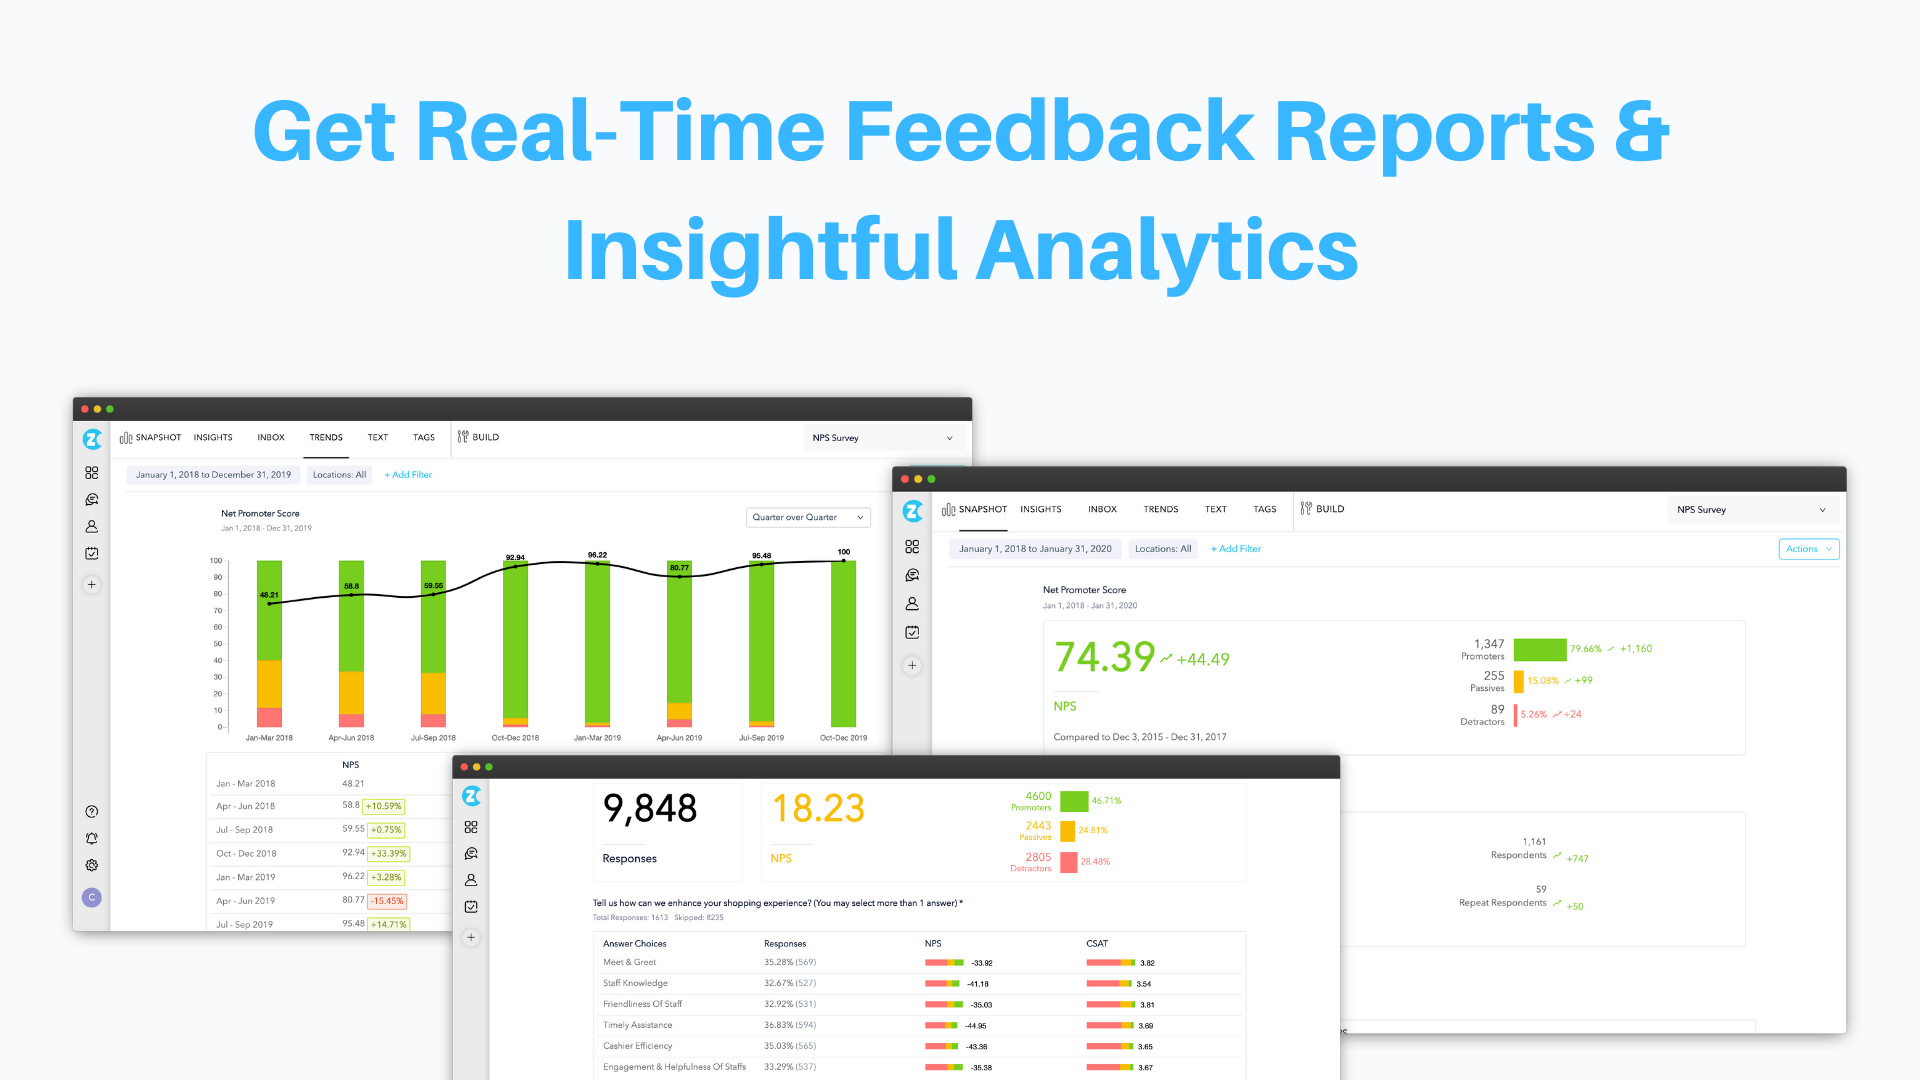 Get Real-Time Feedback Reports & Insightful Analytics